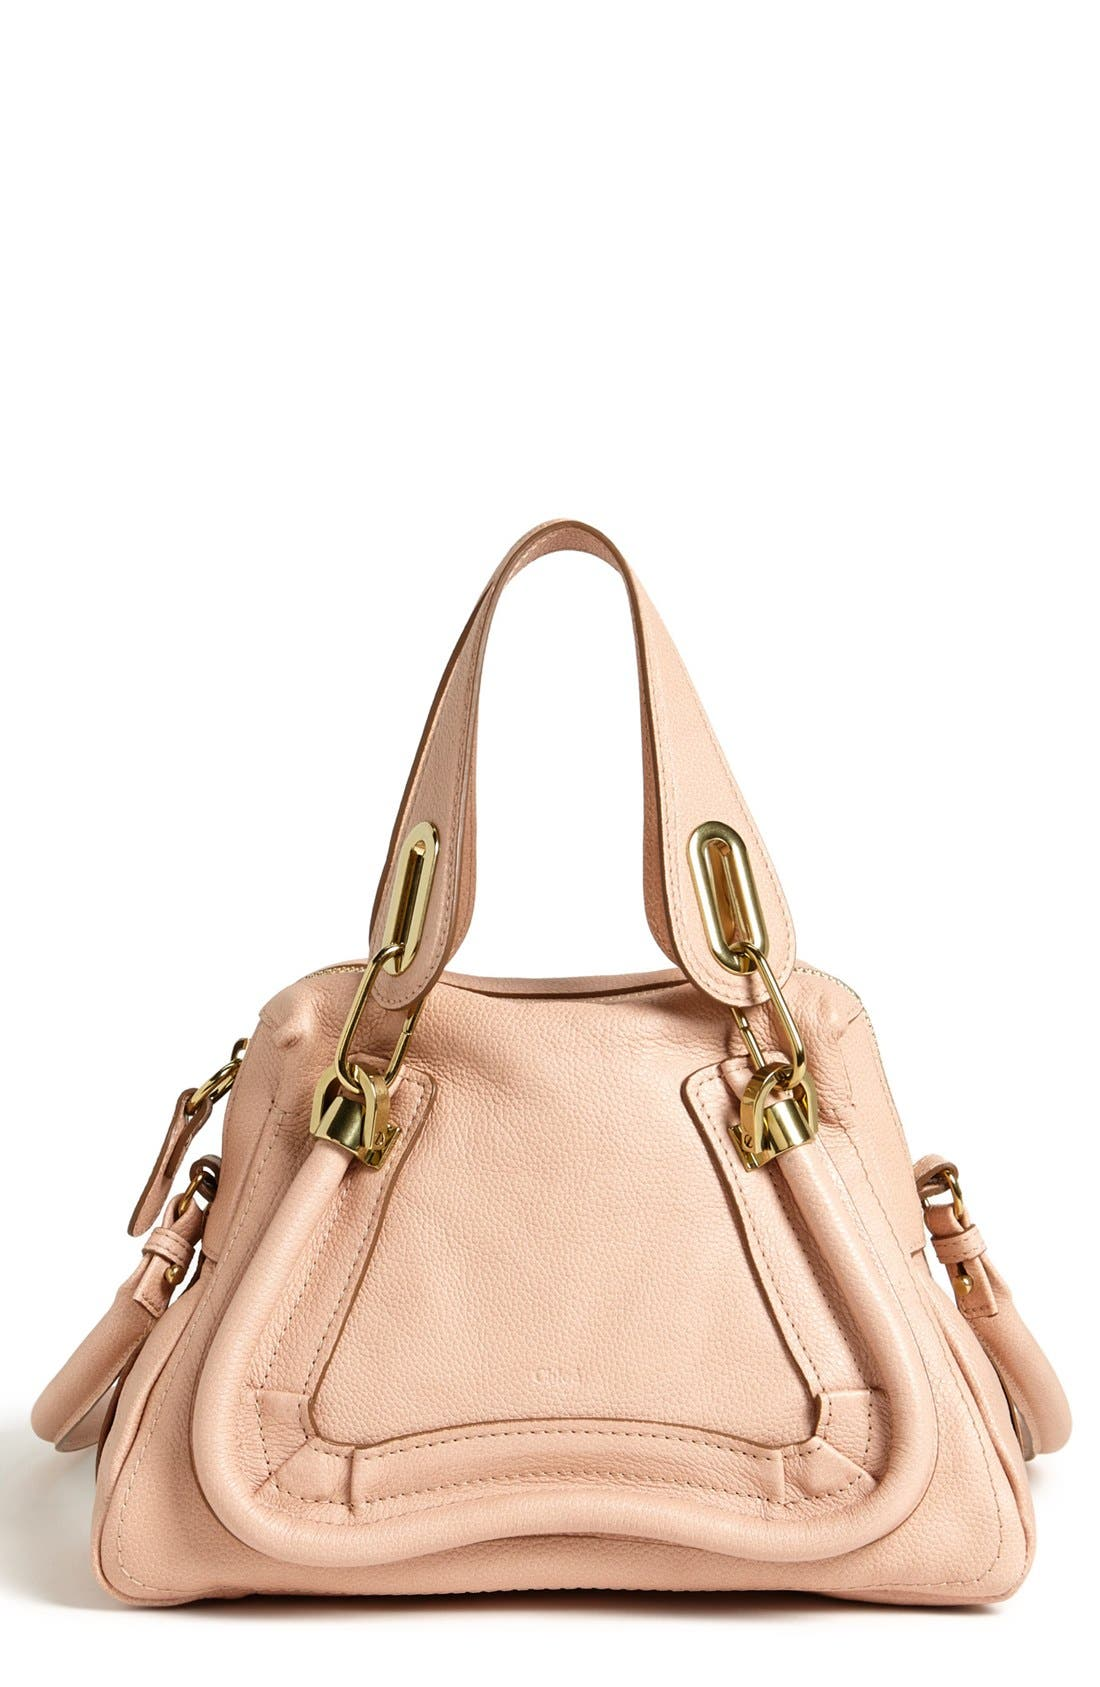 Main Image - Chloé 'Paraty - Small' Leather Satchel